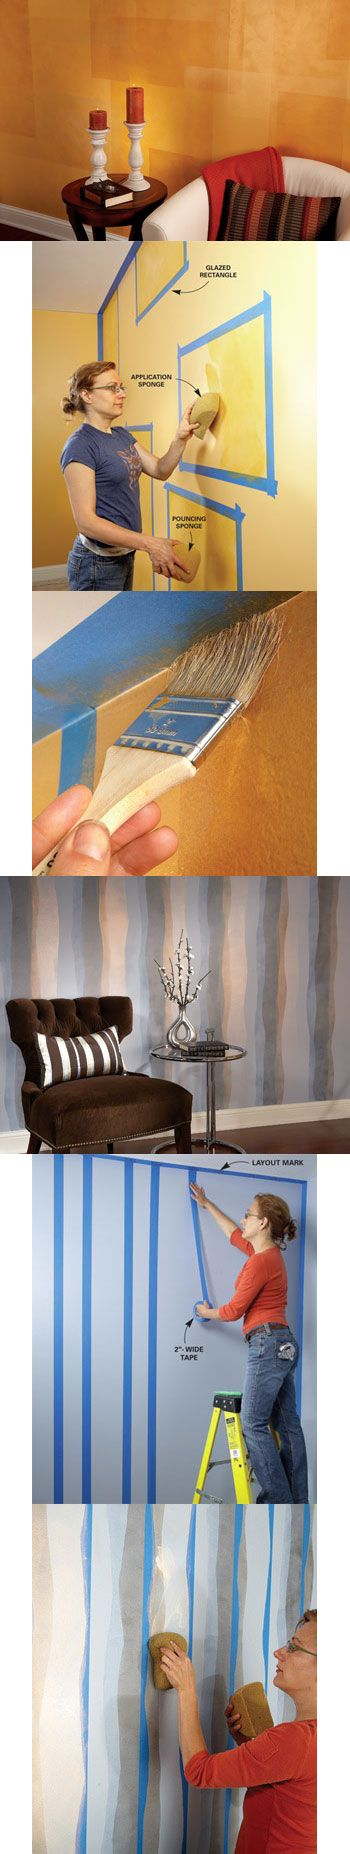 Transform a room in one weekend with one of these three creative painting and glazing techniques. All are easy-to-do, attractive and inexpensive. We will show you how at http://www.familyhandyman.com/DIY-Projects/Wall---Ceiling/Wall-Decorating/paint-pizzazz-decorative-painting-techniques/View-All